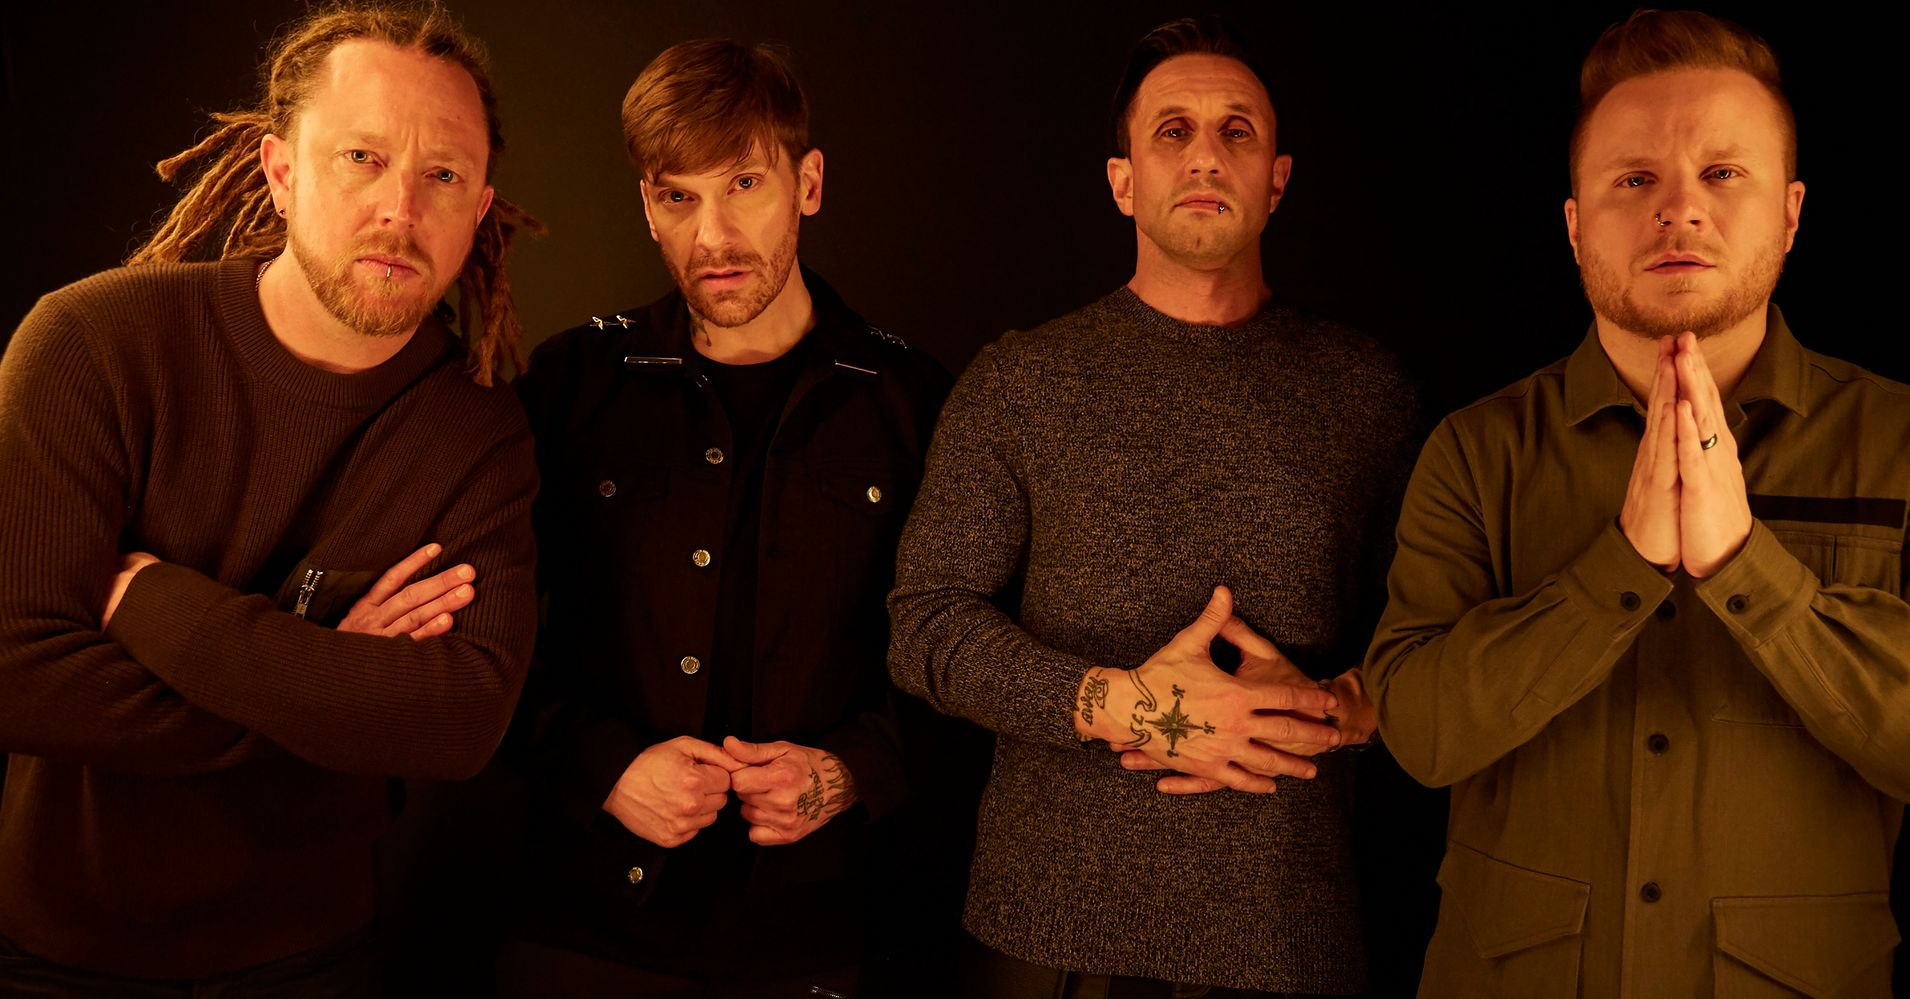 Shinedown Aims Rocks Revealing Light At Depression And Mental